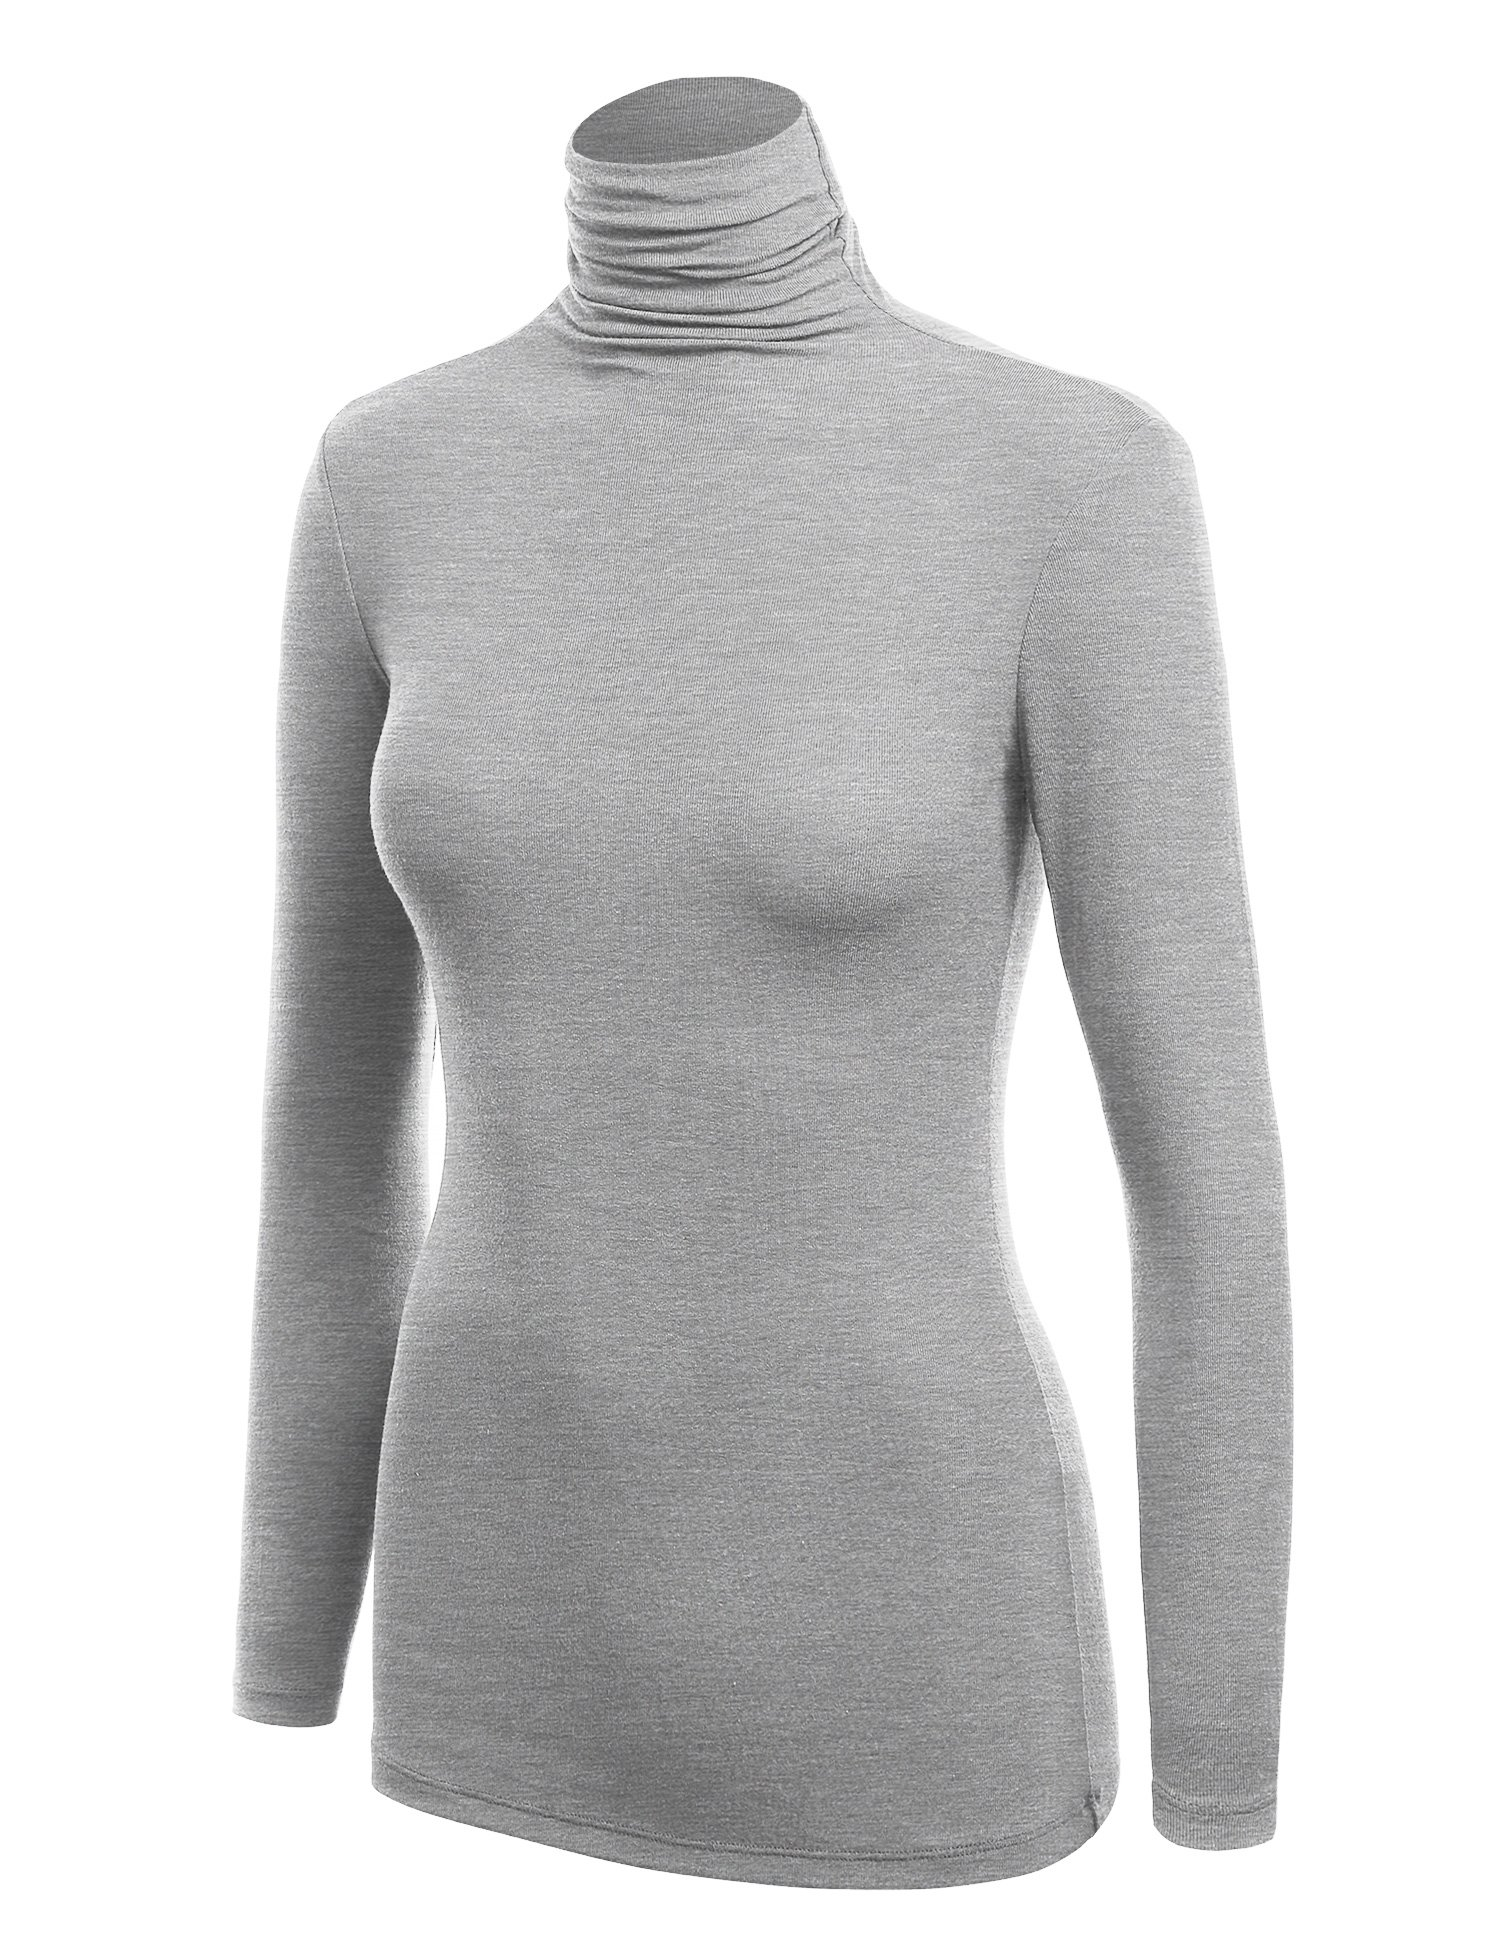 WSK1030 Womens Long Sleeve Ribbed Turtleneck Pullover Sweater L Heather_Grey